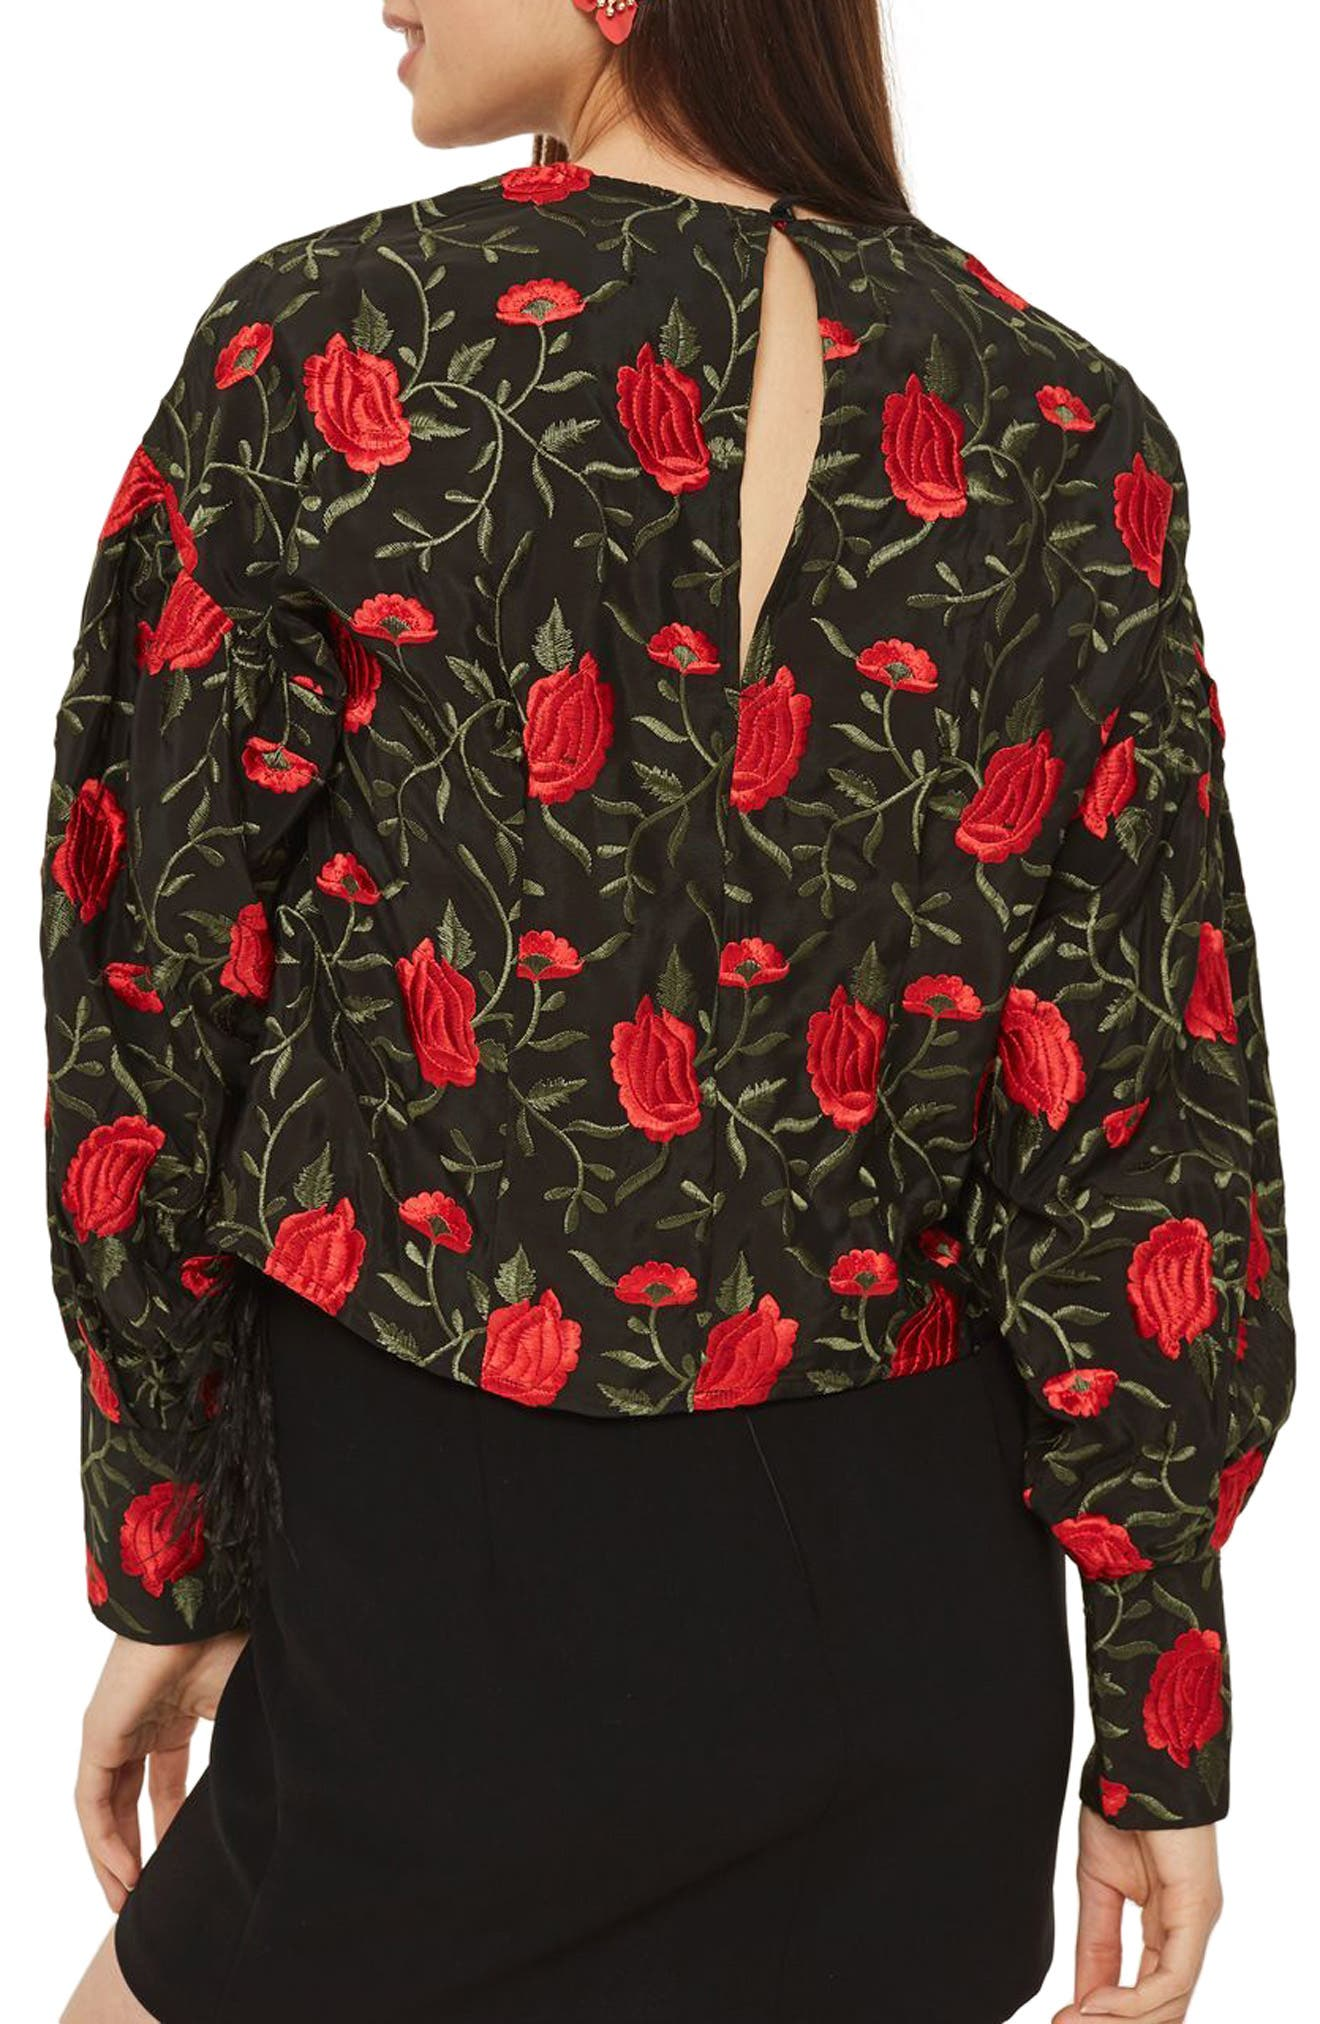 Rose Embroidered Balloon Sleeve Blouse,                             Alternate thumbnail 2, color,                             001